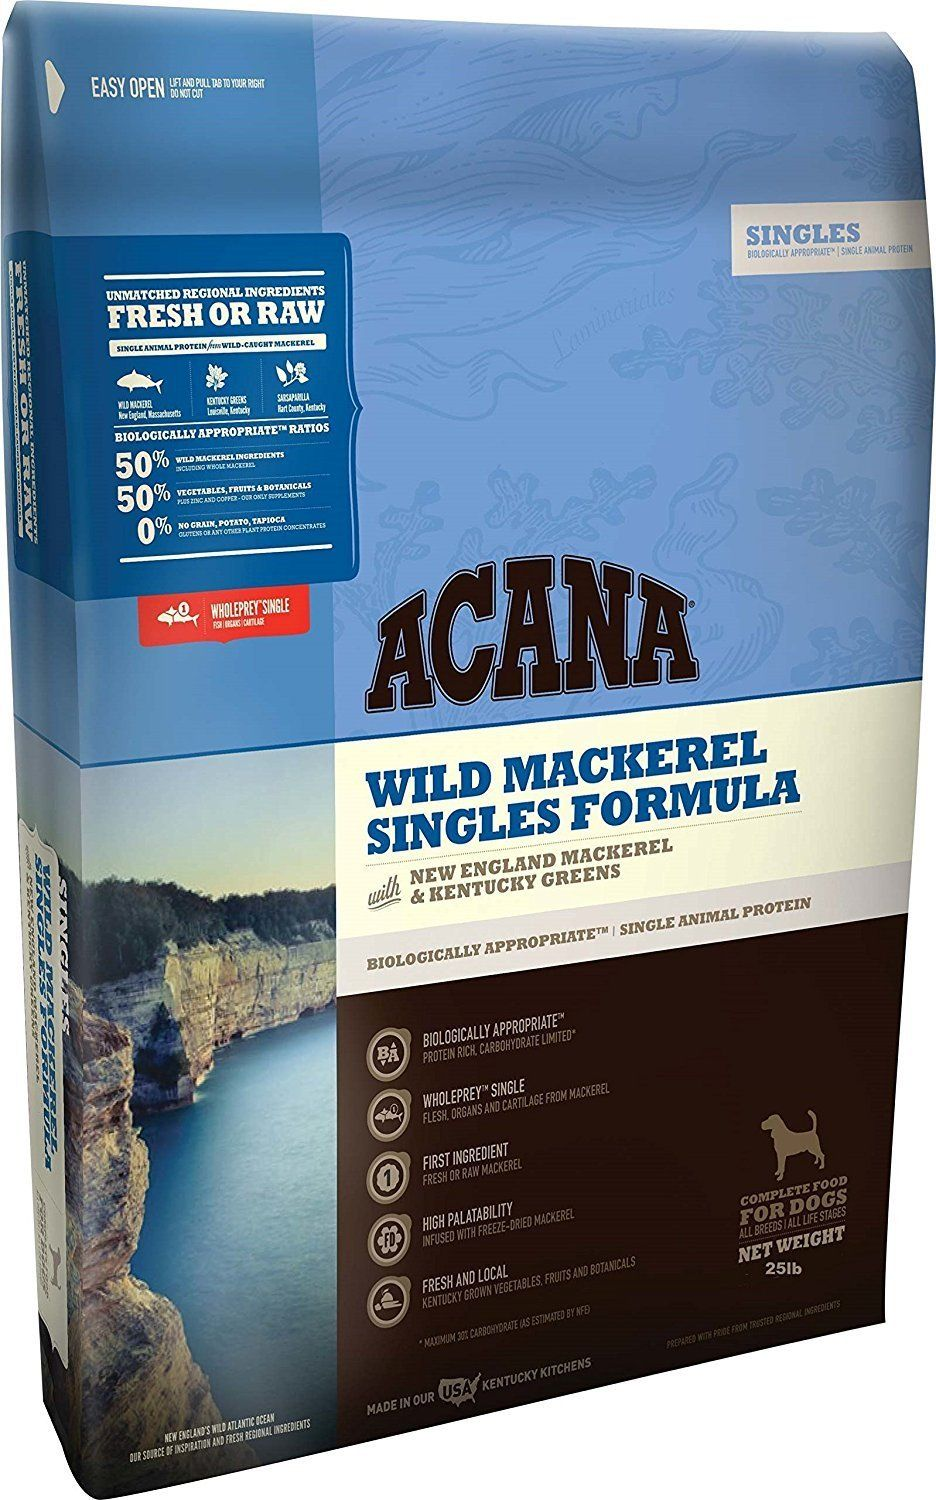 Acana Singles Wild Mackerel Dry Dog Food Click Image To Review